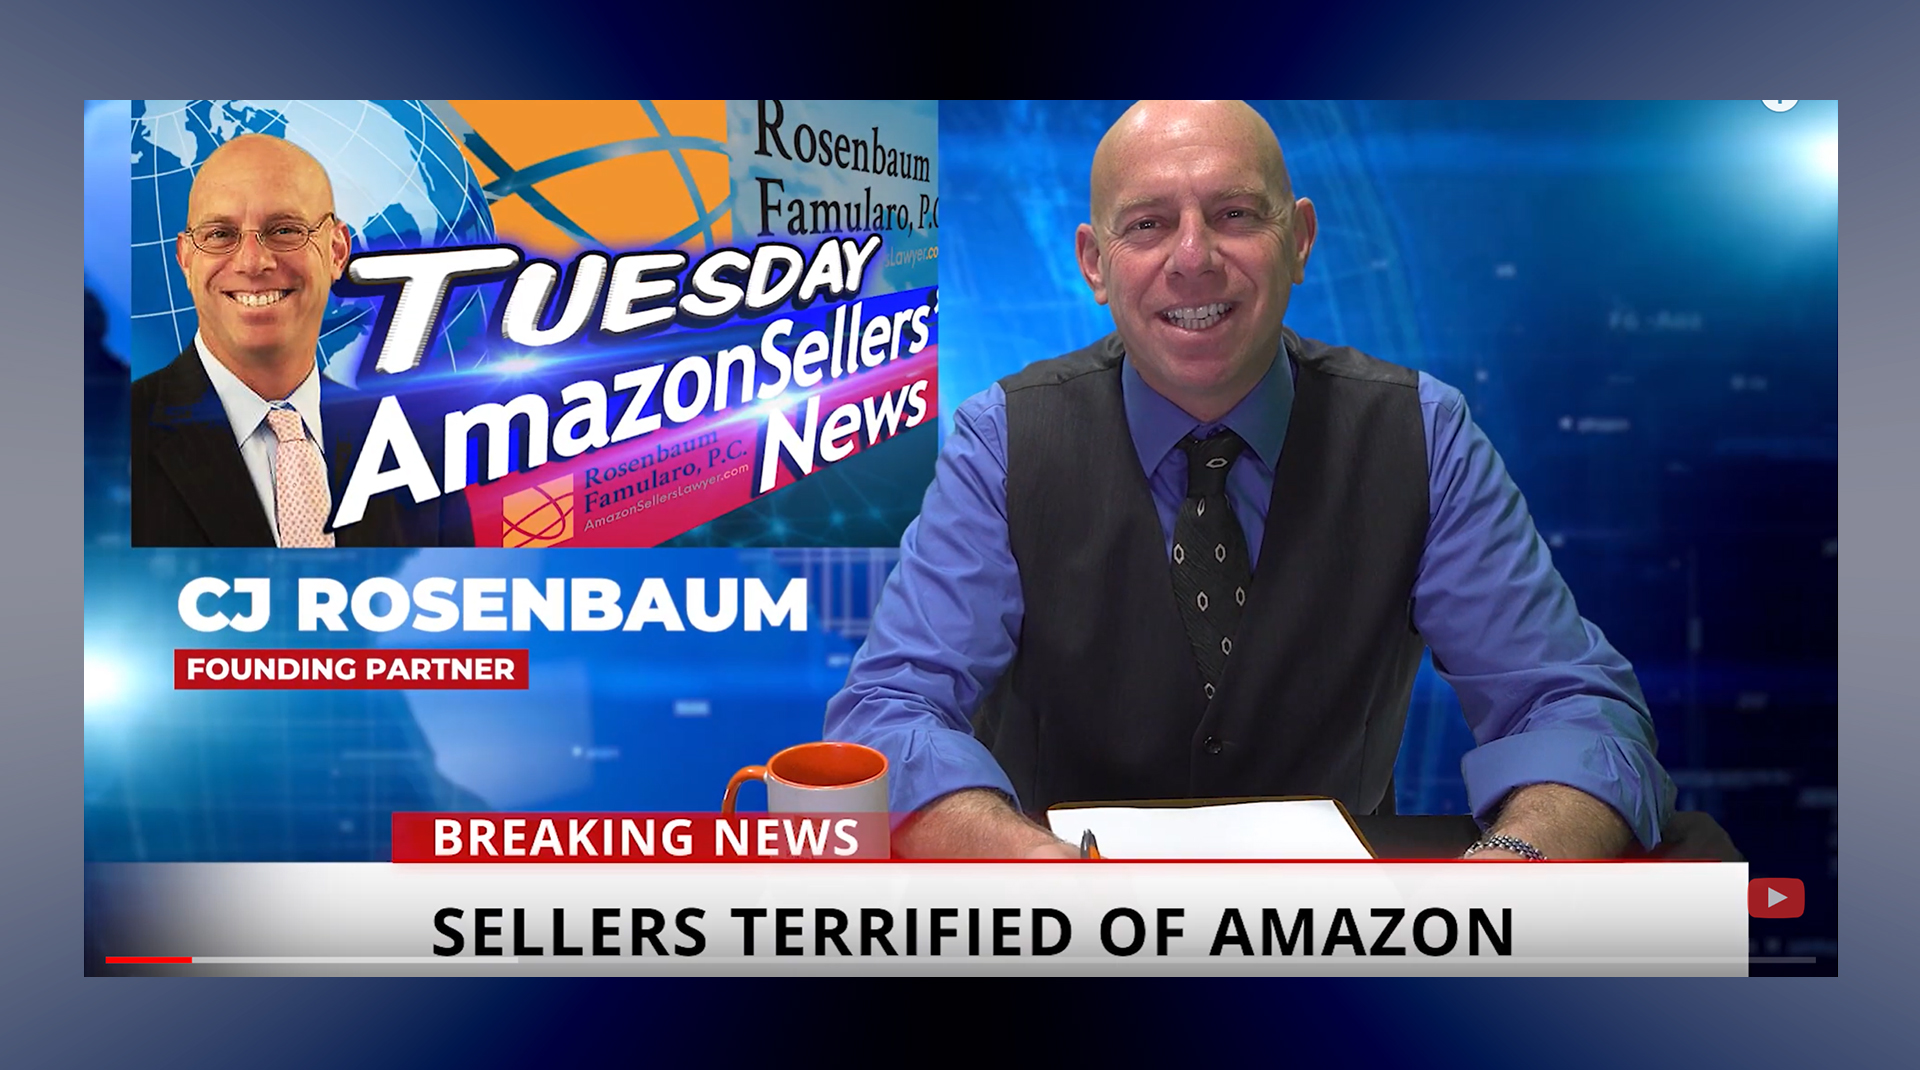 Amazon Sellers' News 12/17/19 - Amazon Sellers Terrified of New Policy Update & Chinese Problems Arriving in the United States